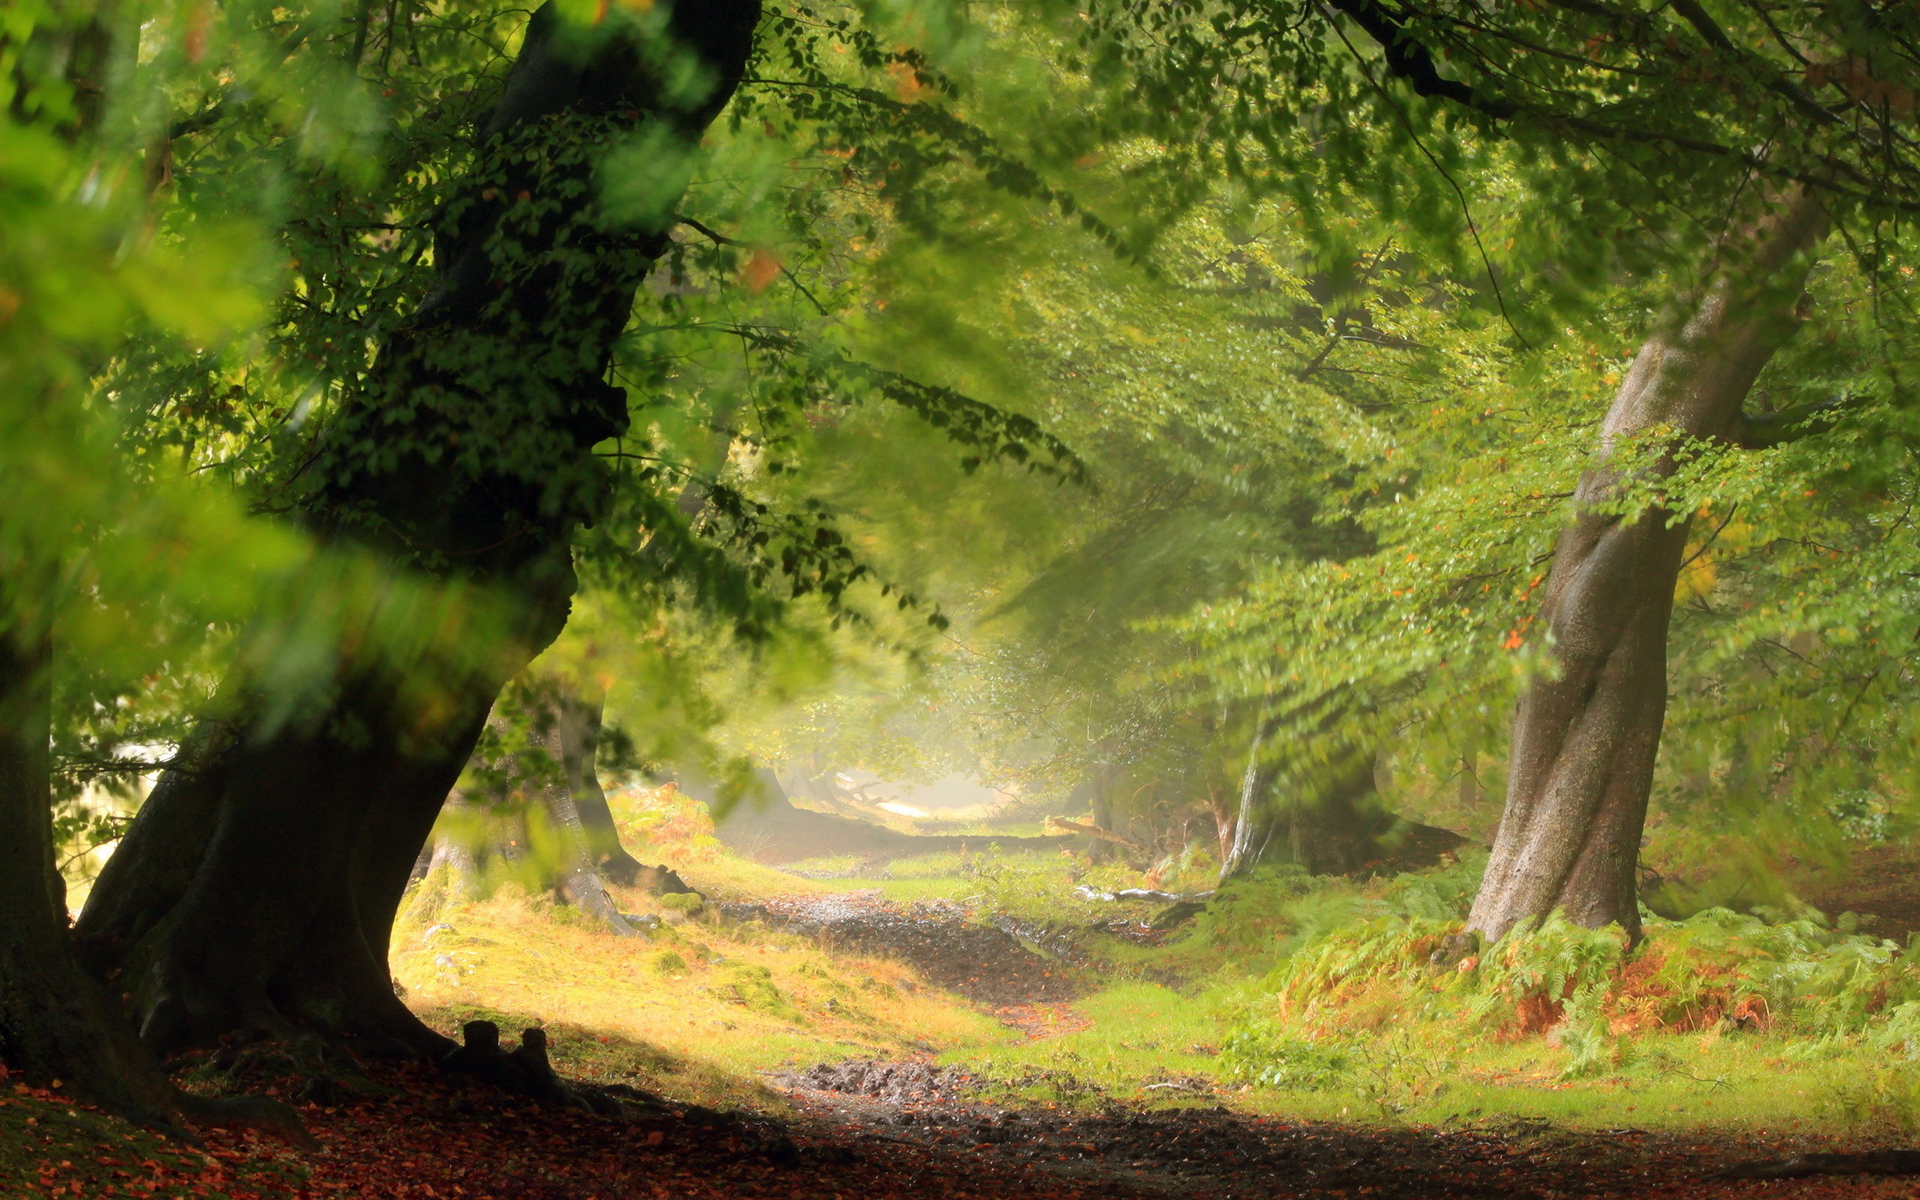 Earth - Forest  Landscape Scenic Wallpaper